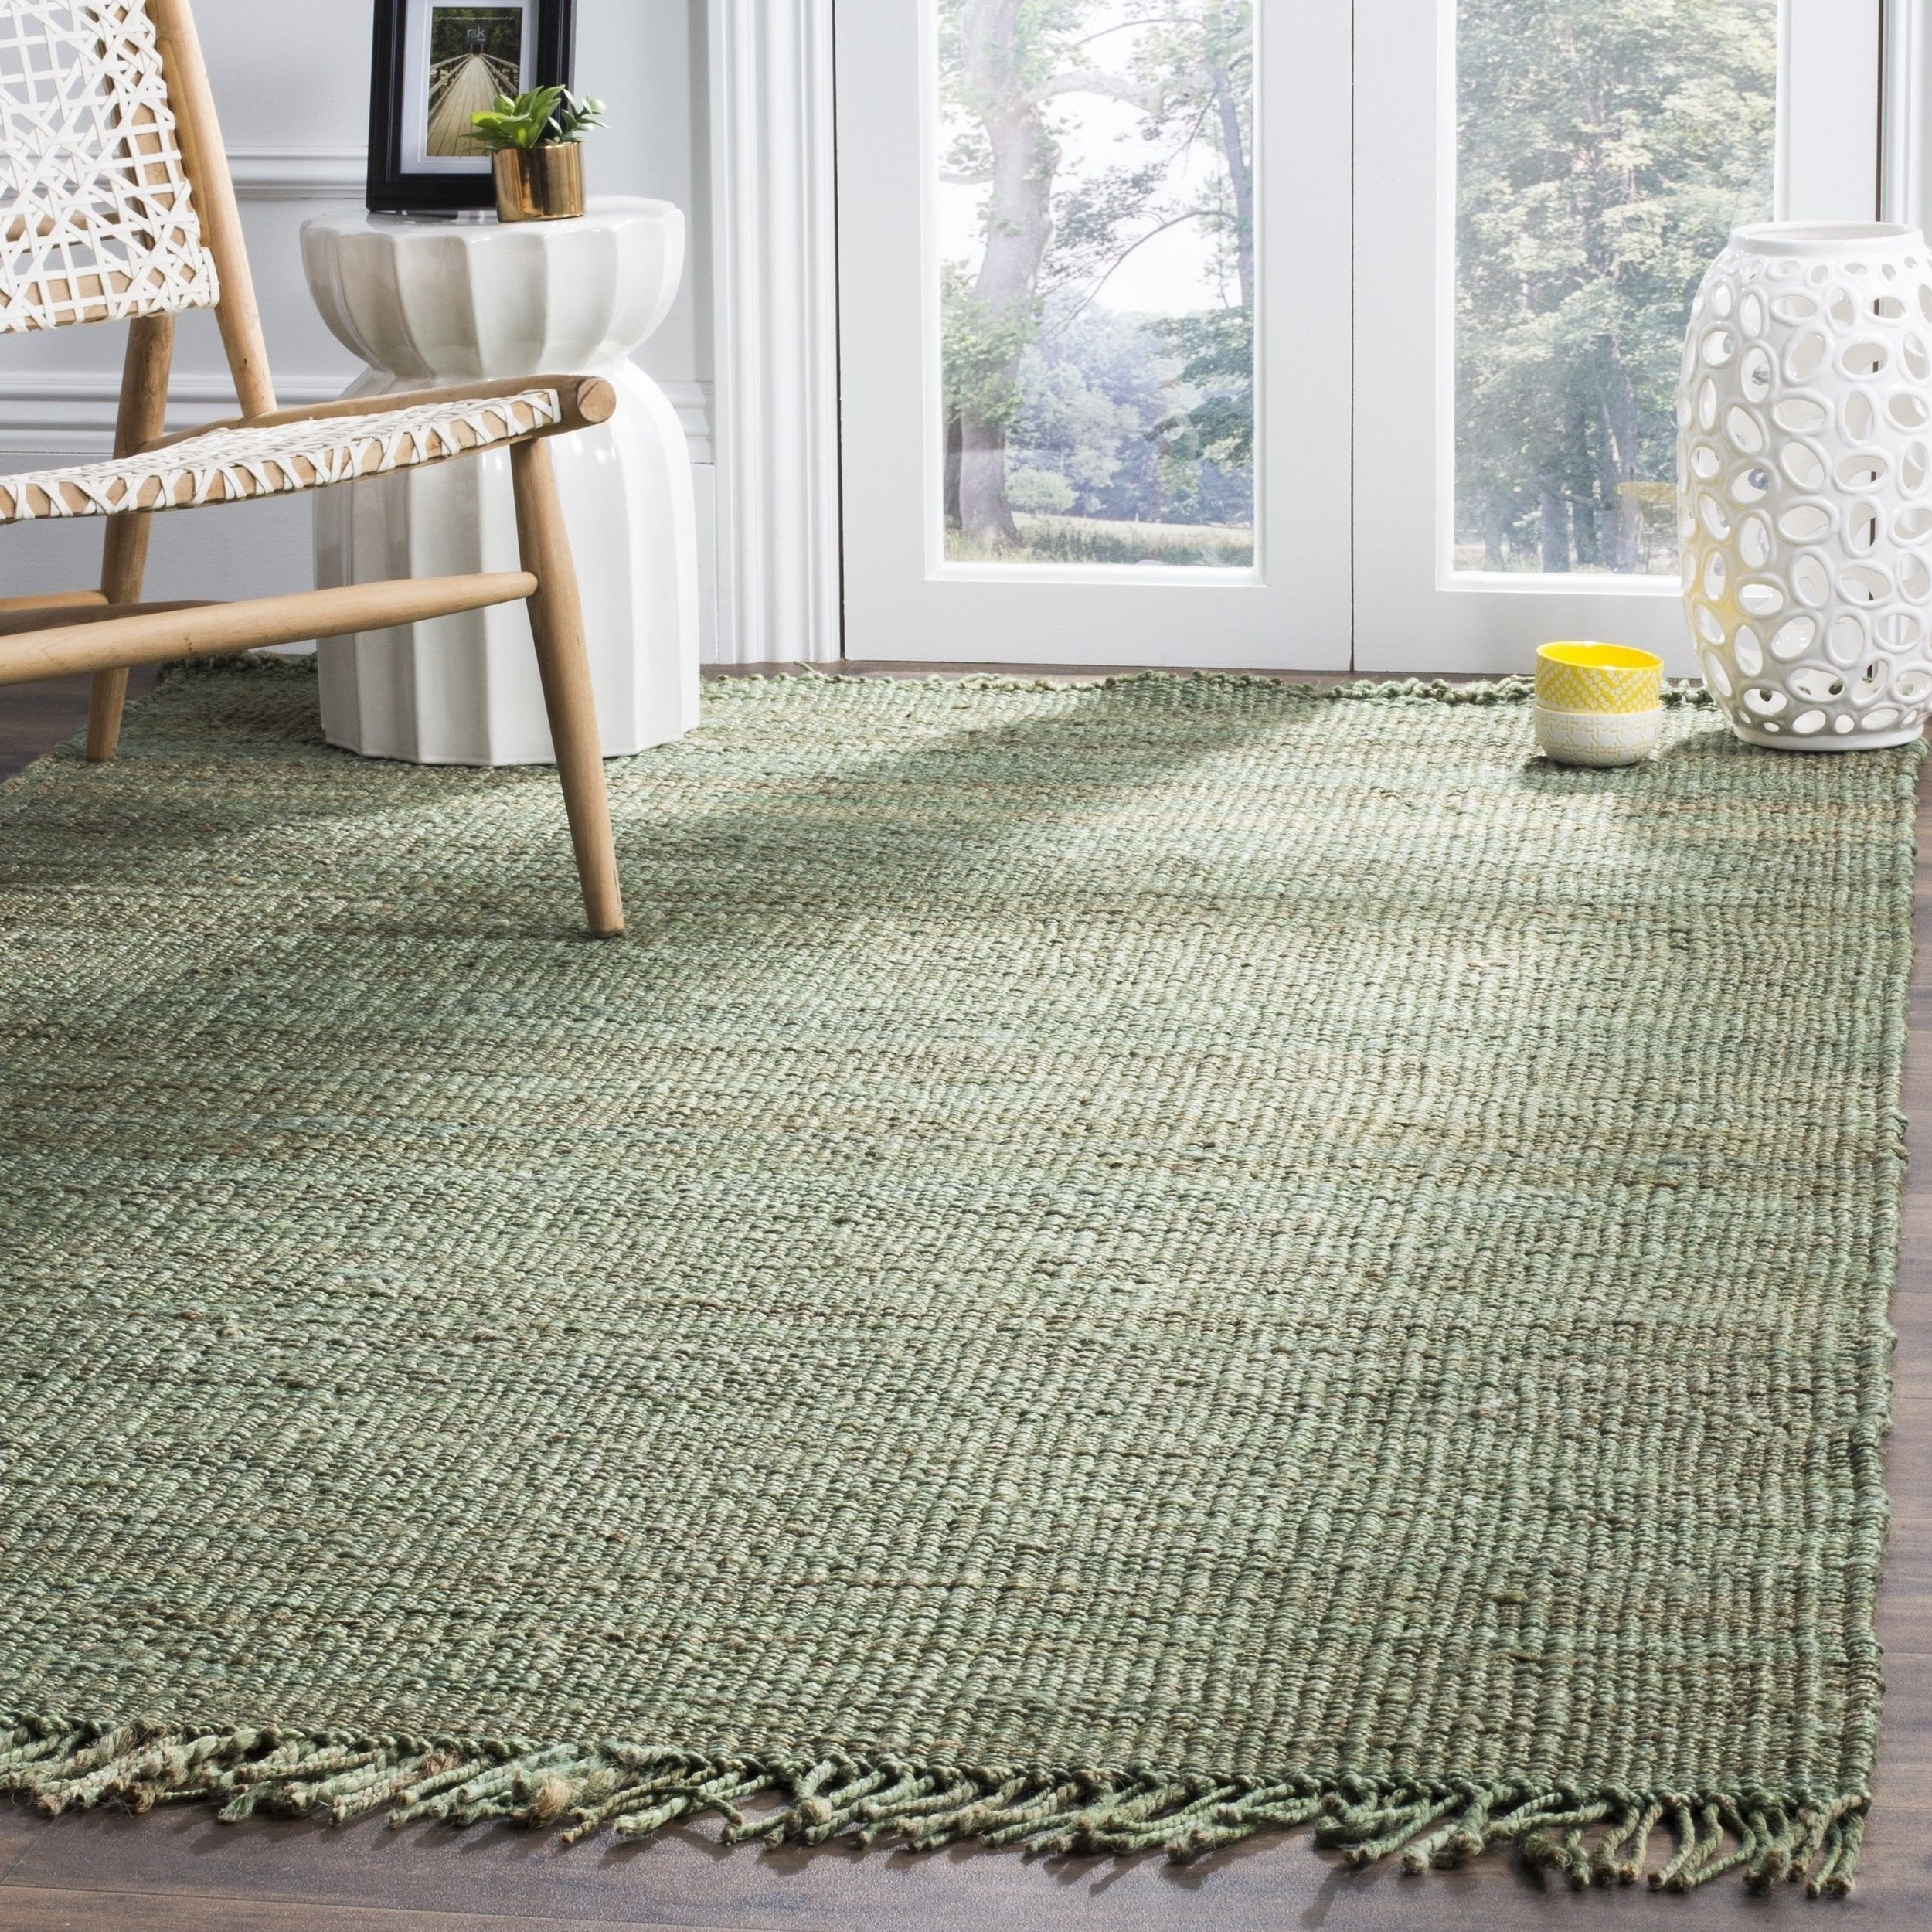 Overstock Com Online Shopping Bedding Furniture Electronics Jewelry Clothing More Green Area Rugs Area Rugs Braided Area Rugs